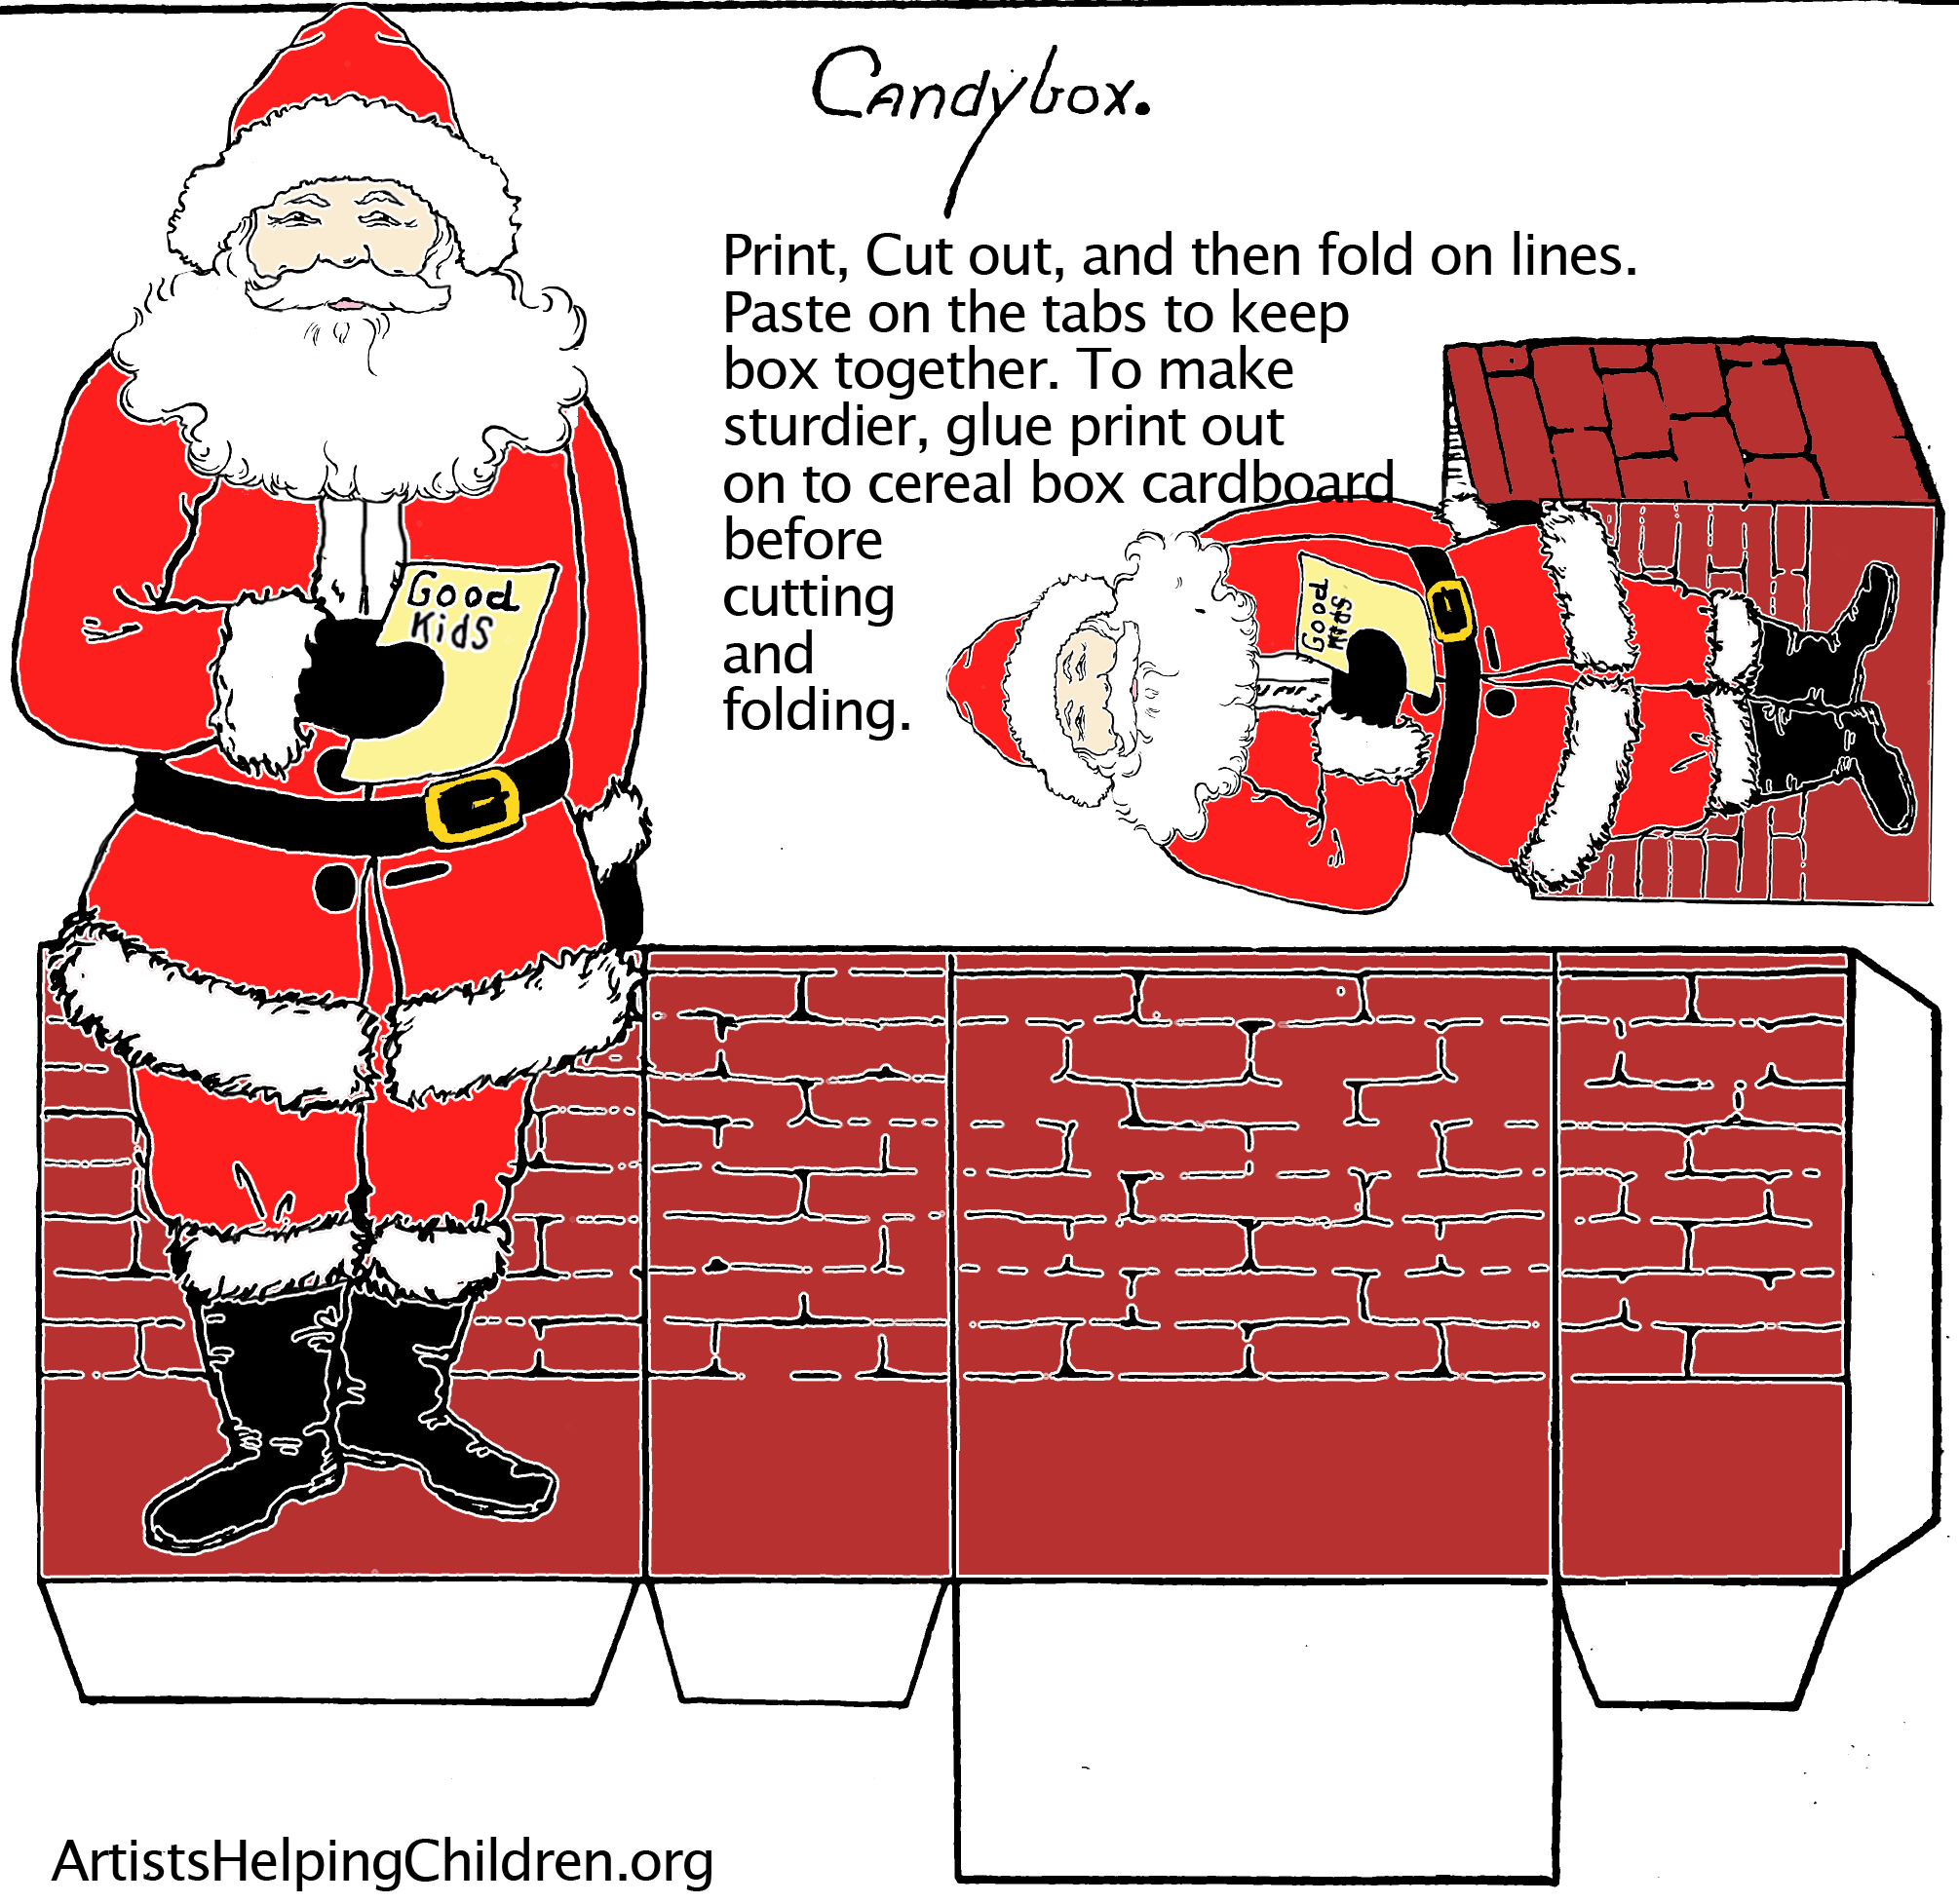 paper crafts templates make a santa clause paper candy box paper crafts templates make a santa clause paper candy box printable paper craft